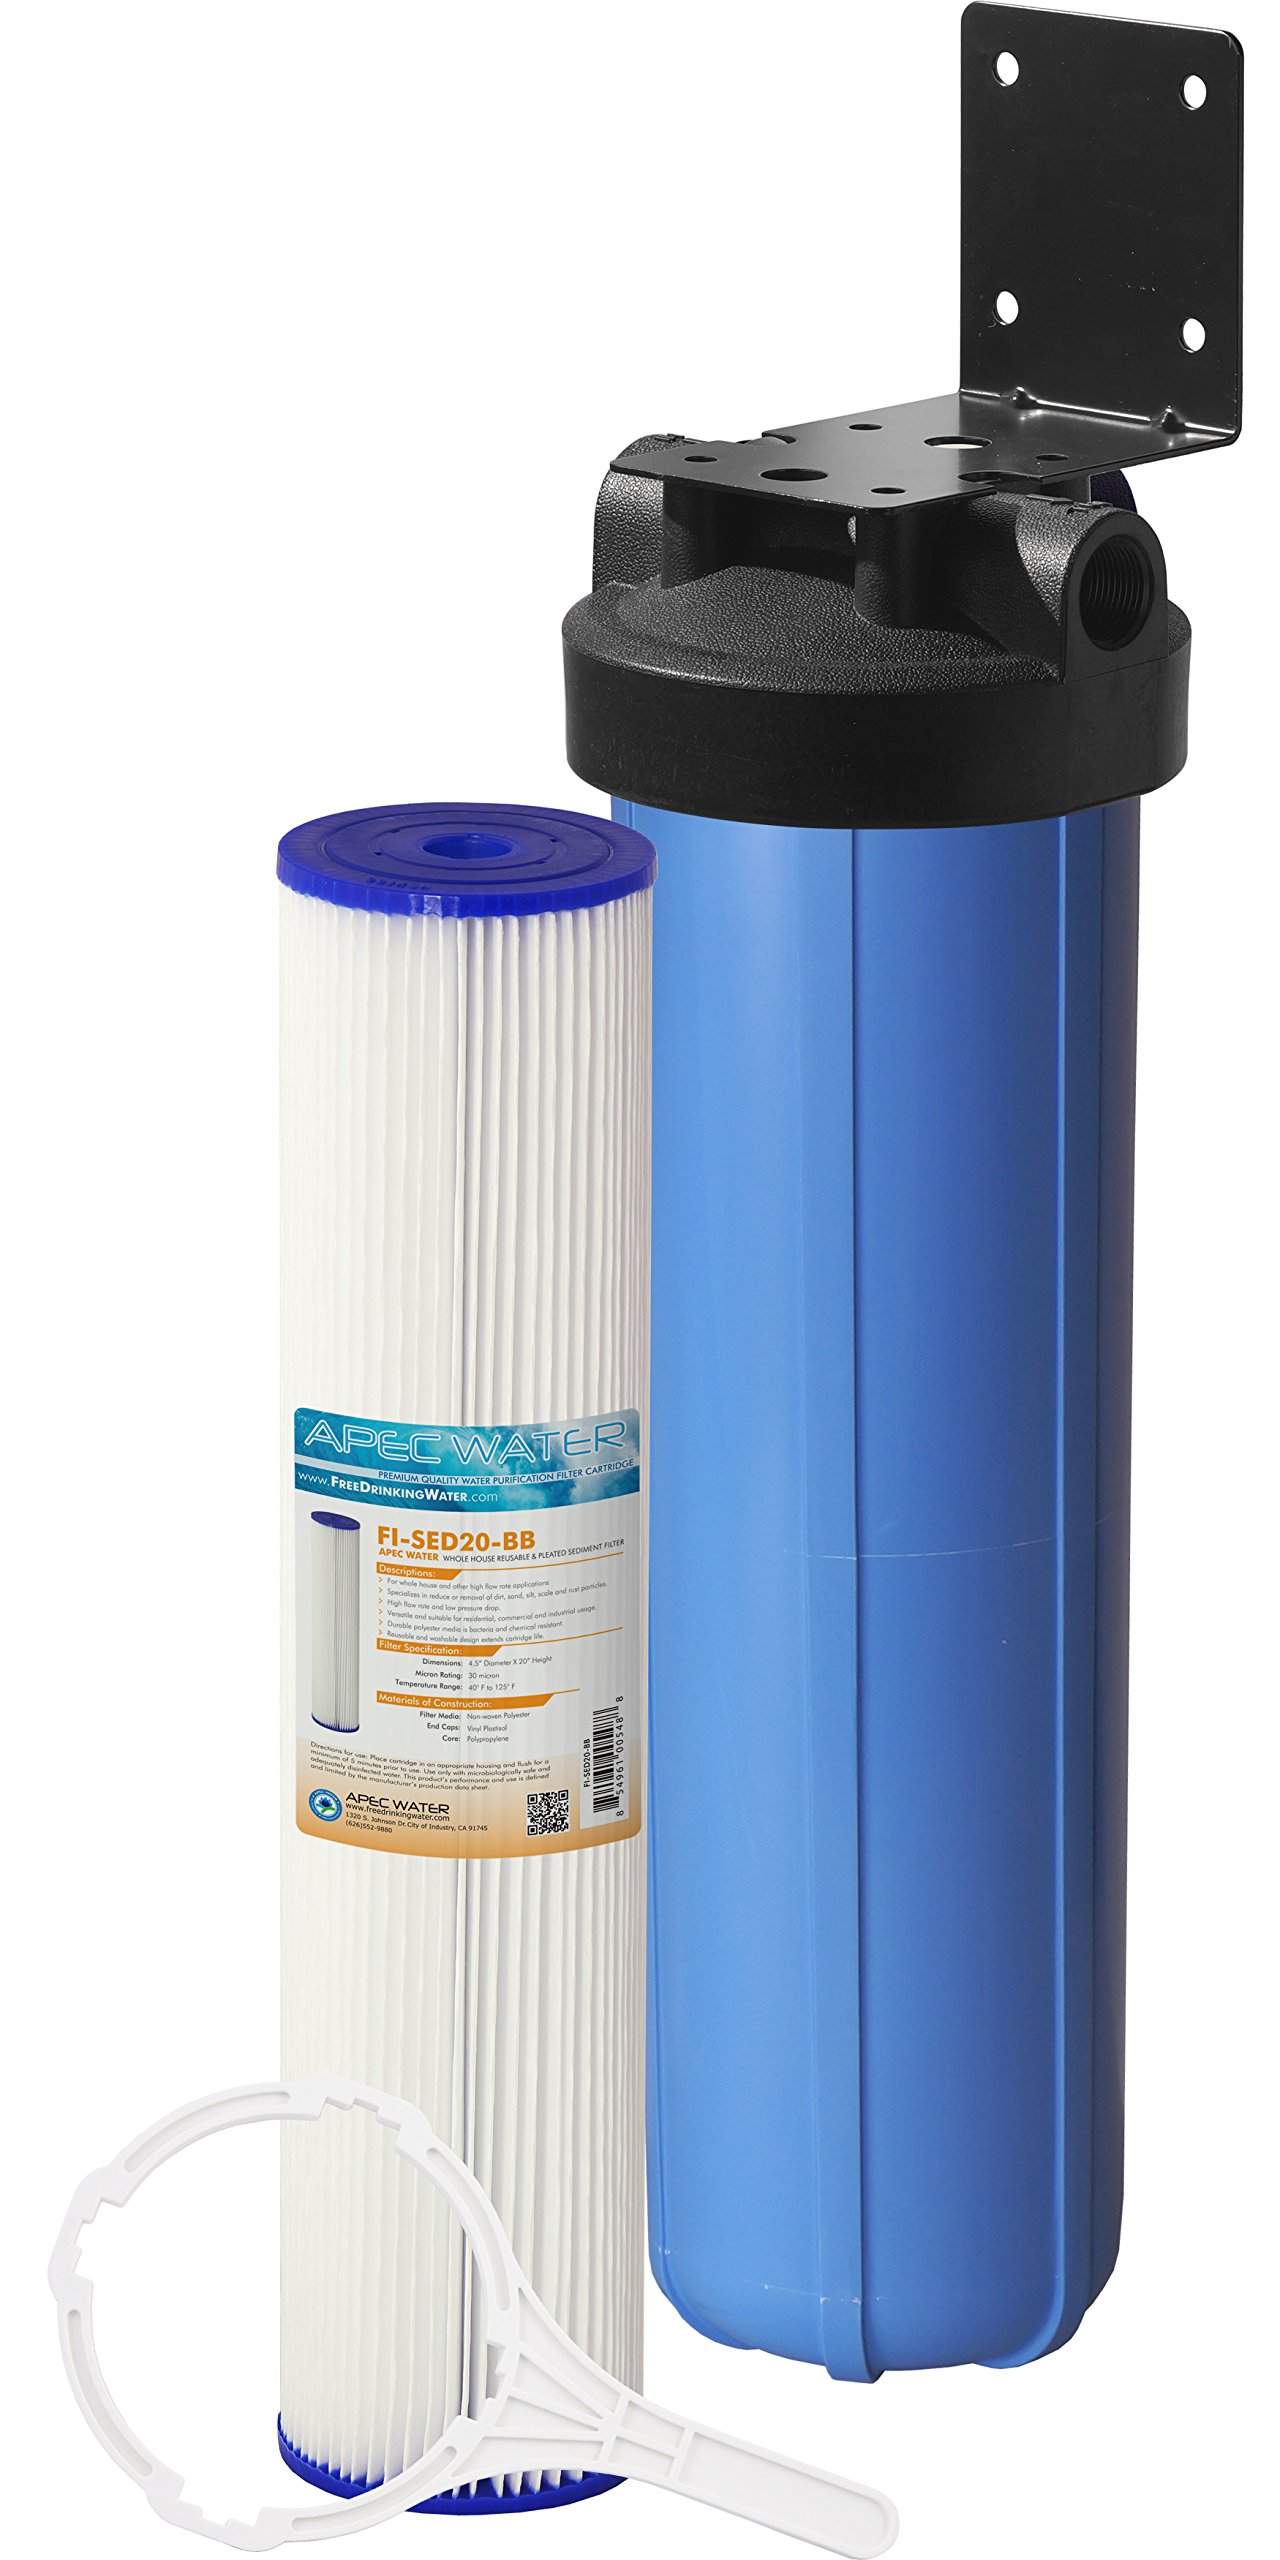 APEC Whole House Water Filter System with 20'' Big Blue Sediment Filter (CB1-SED20-BB)